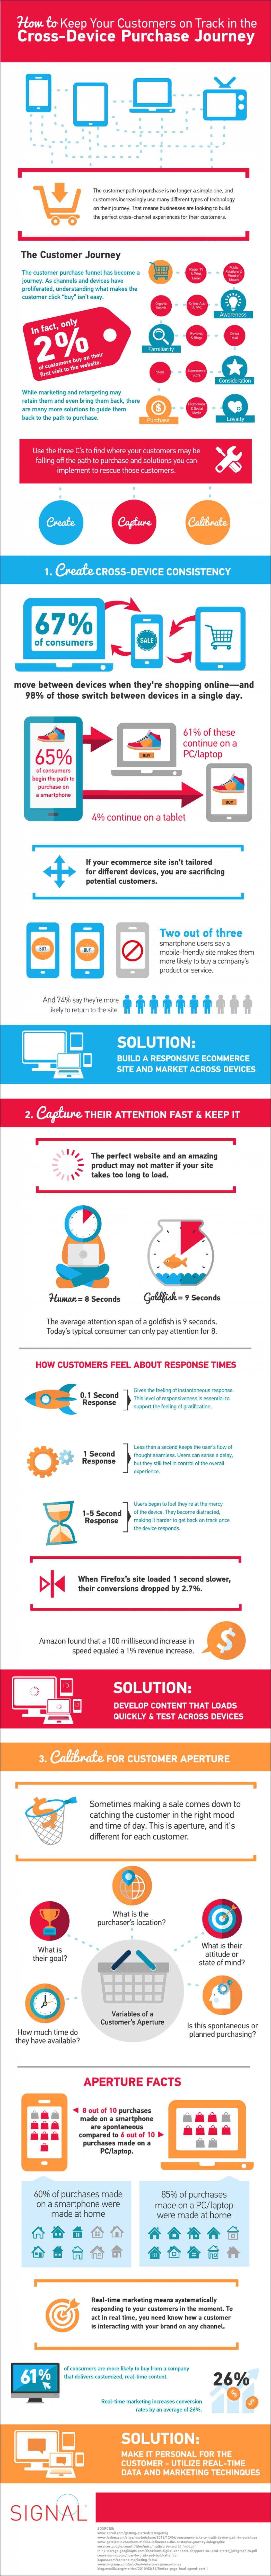 How to Keep Your Customers on Track in the Cross-Device Purchase Journey Infographic